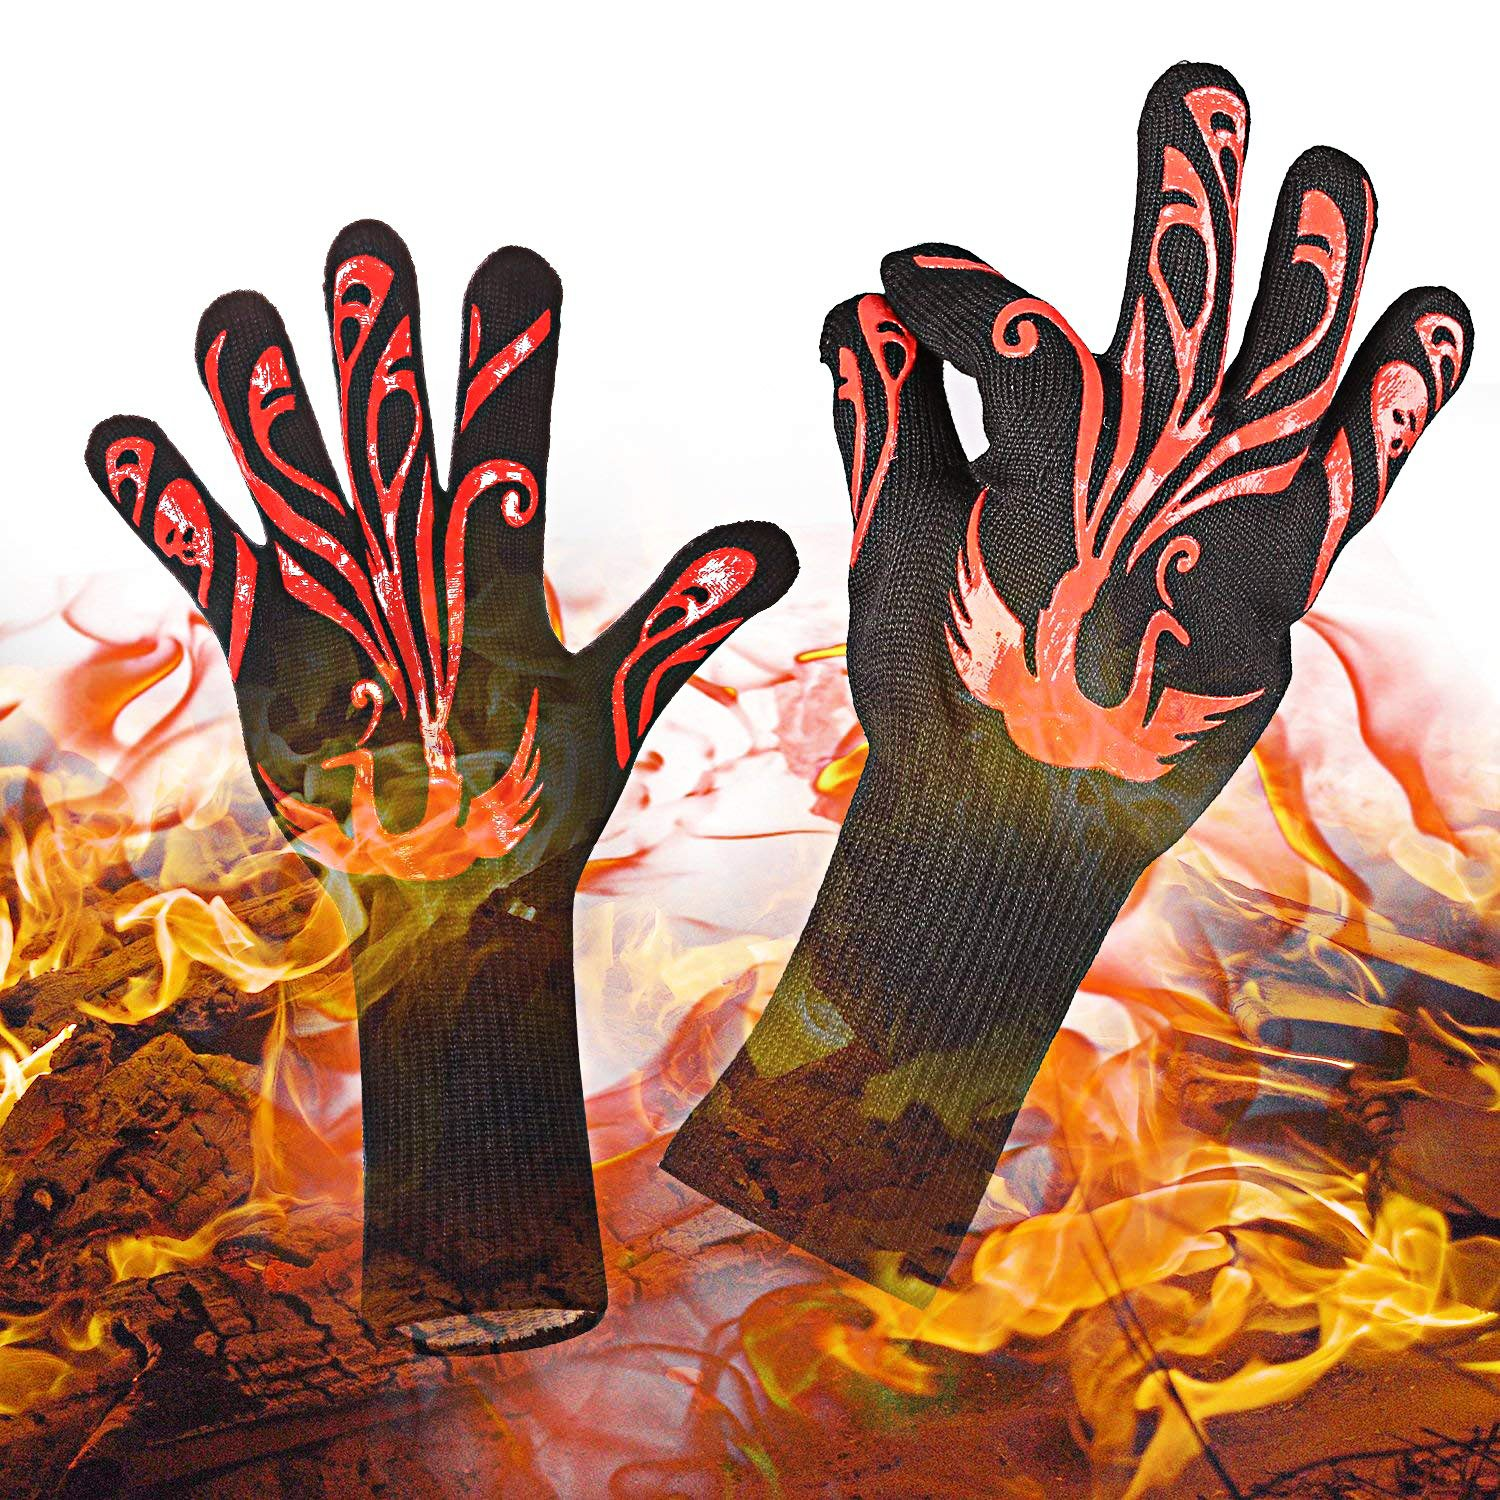 Yuanming 2018 BBQ Grilling Cooking Gloves, 932°F Heat Resistant Kitchen Oven Mitts Gloves, 1 Pair 14'' Long Extra Forearm Protection Top BBQ Accessories (Black/Red)